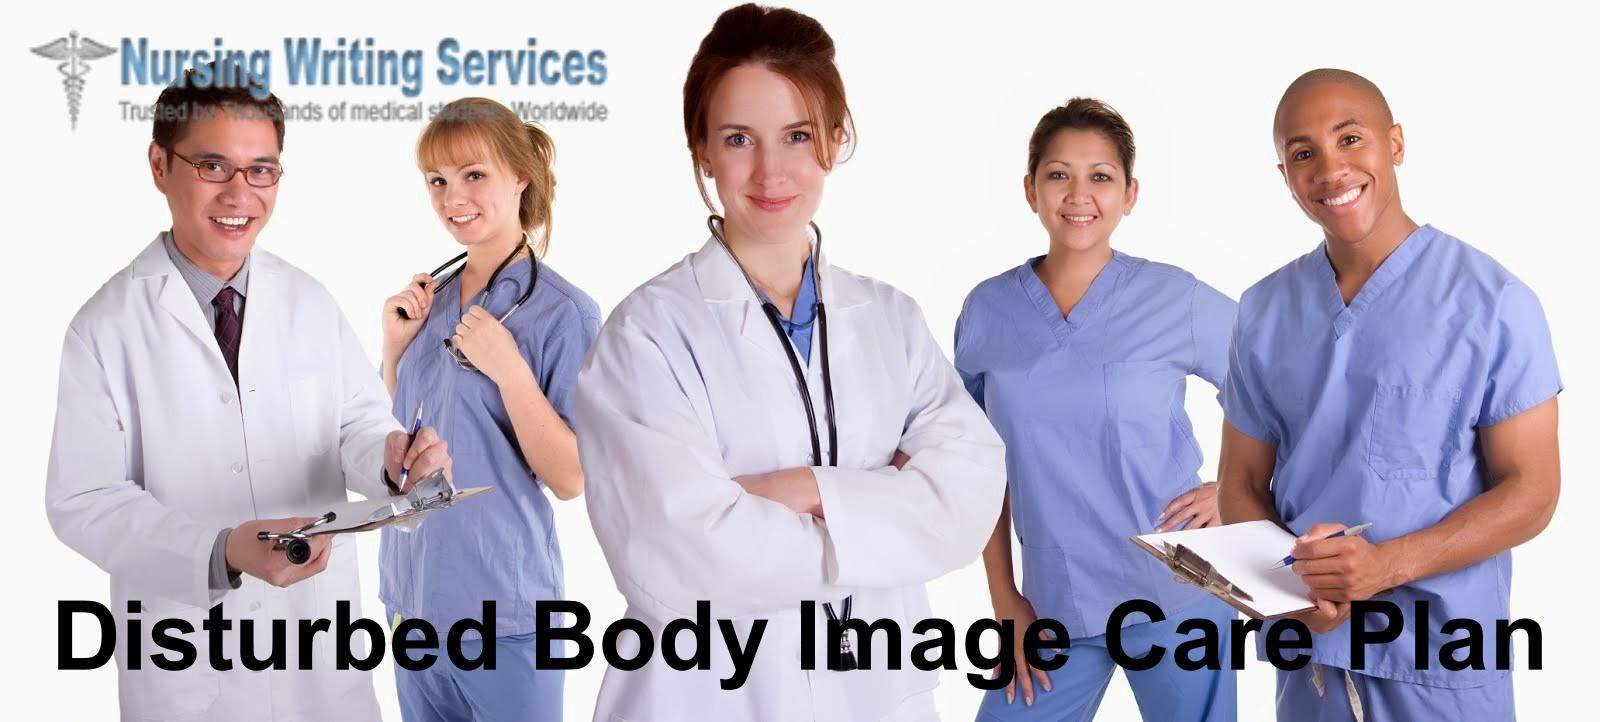 Disturbed Body Image Care Plan Writing Services